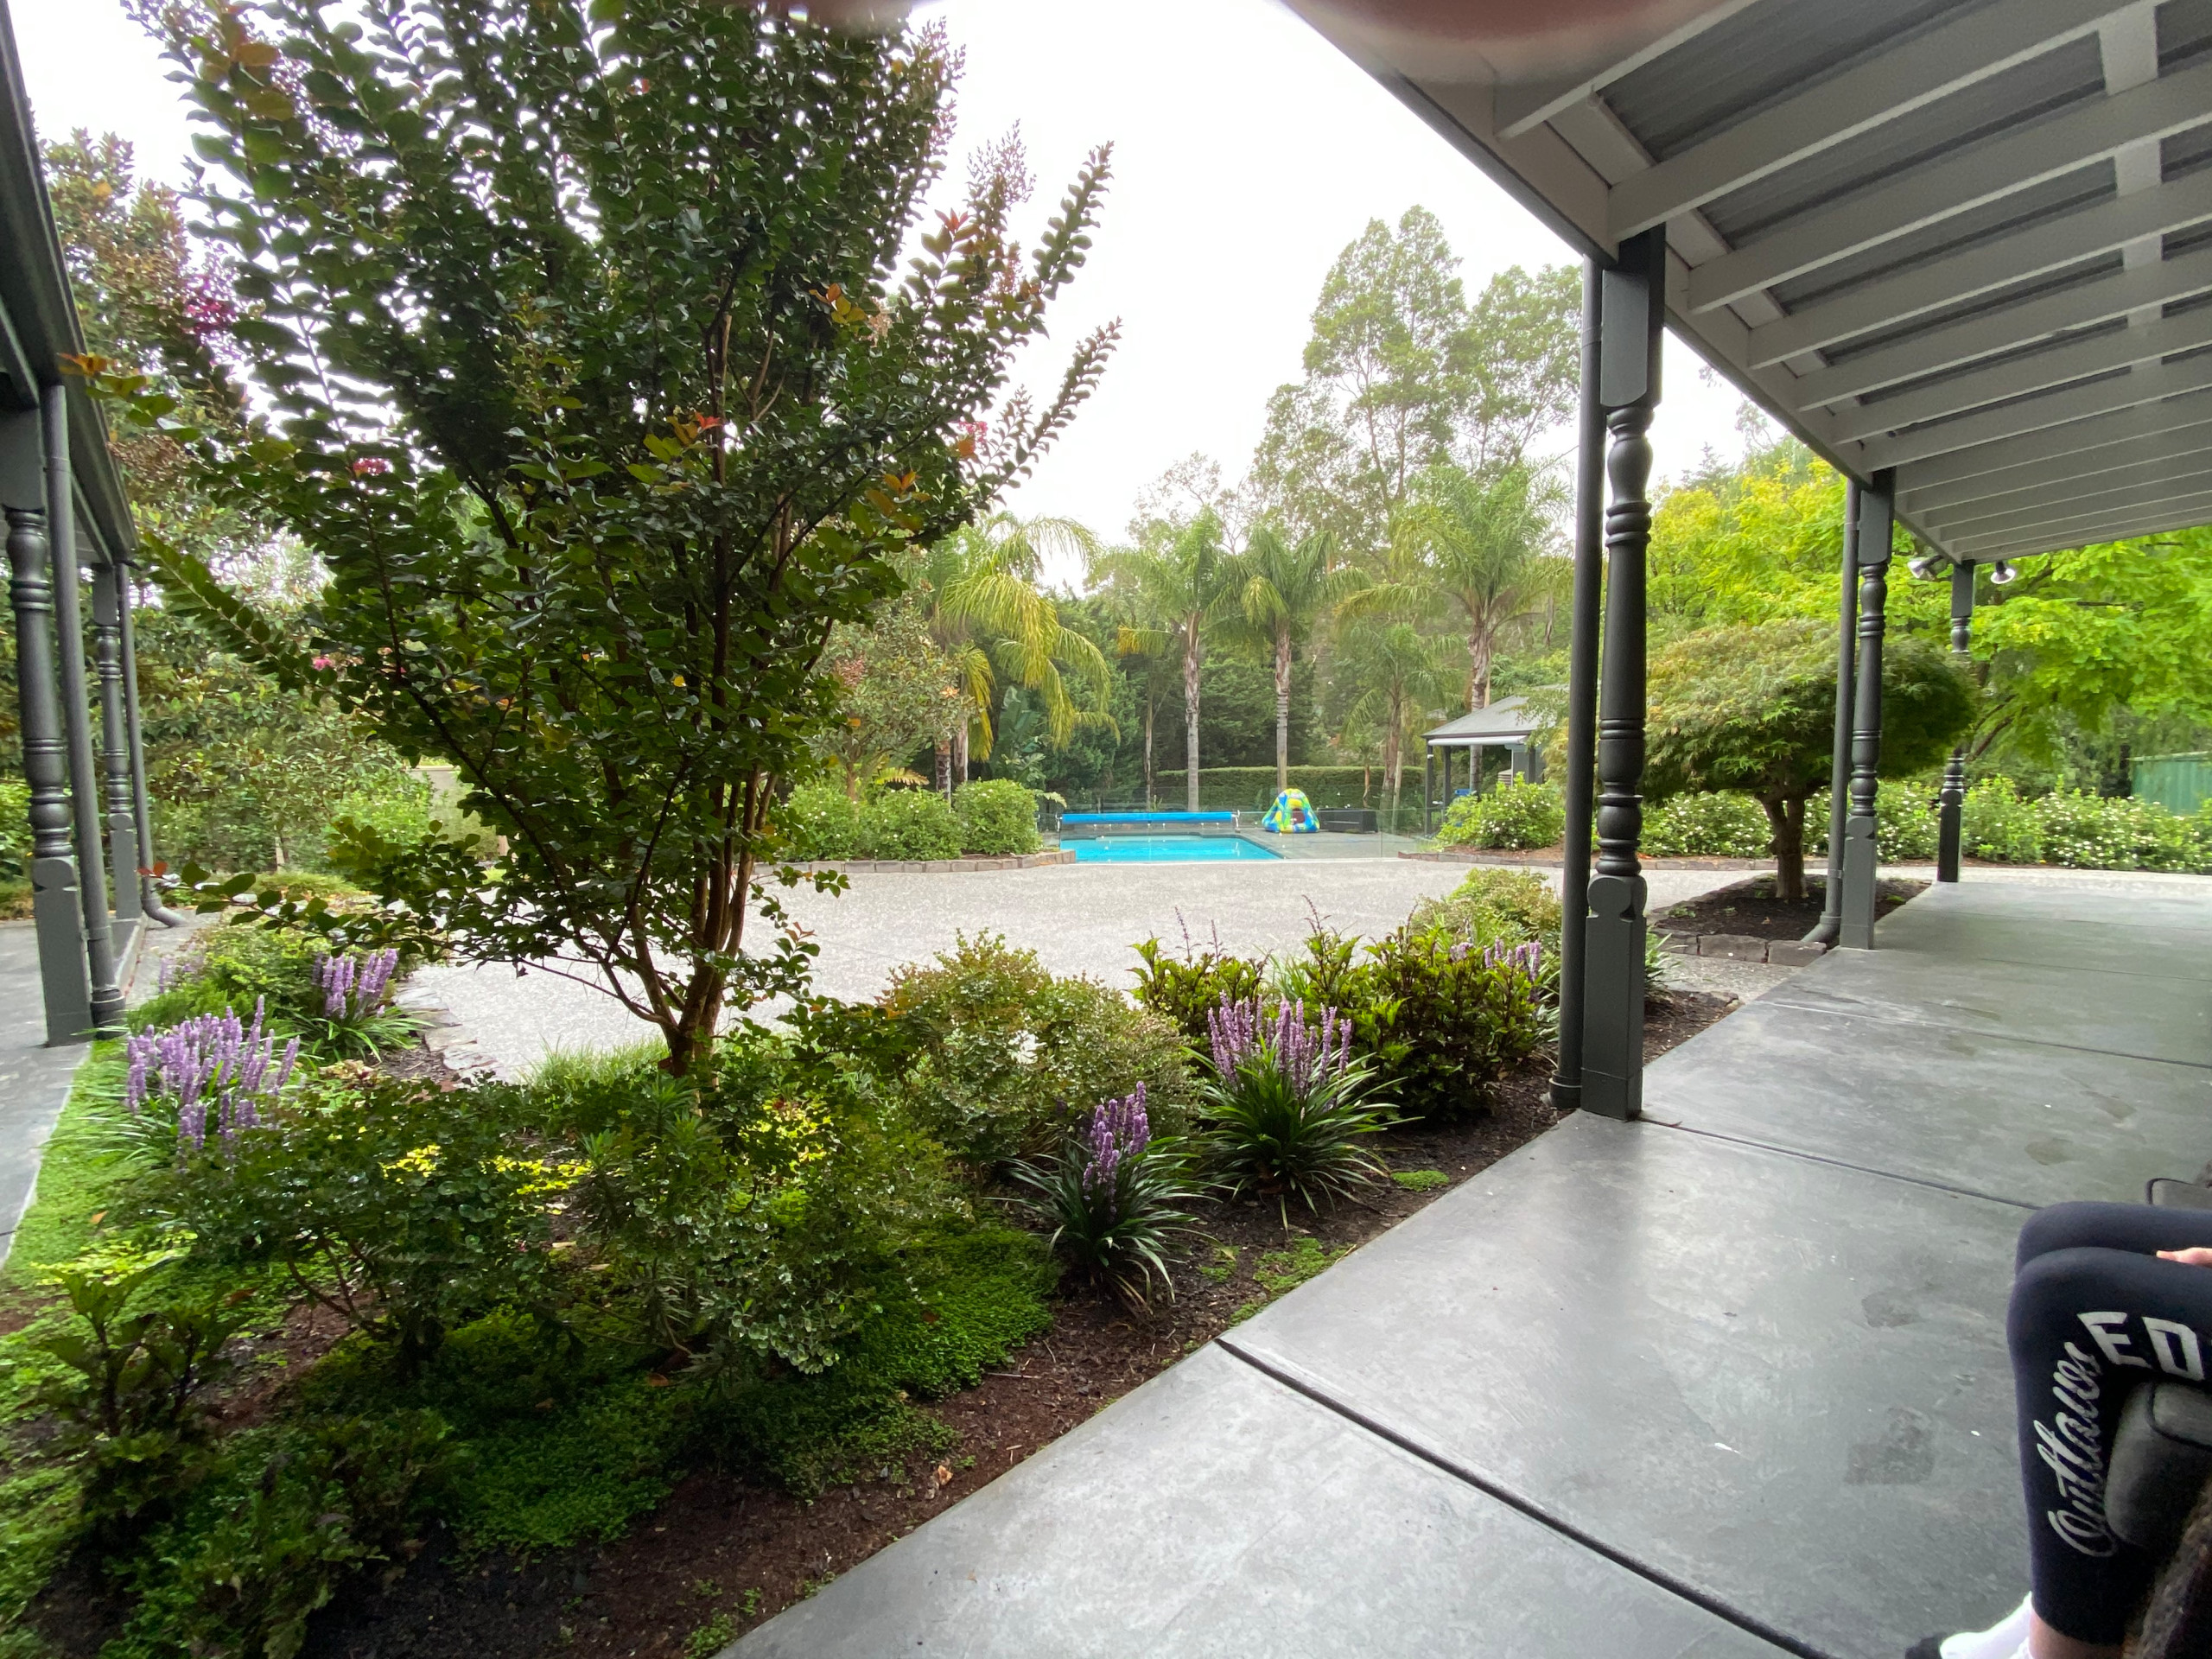 Pool Design and Planting in Wonga Park